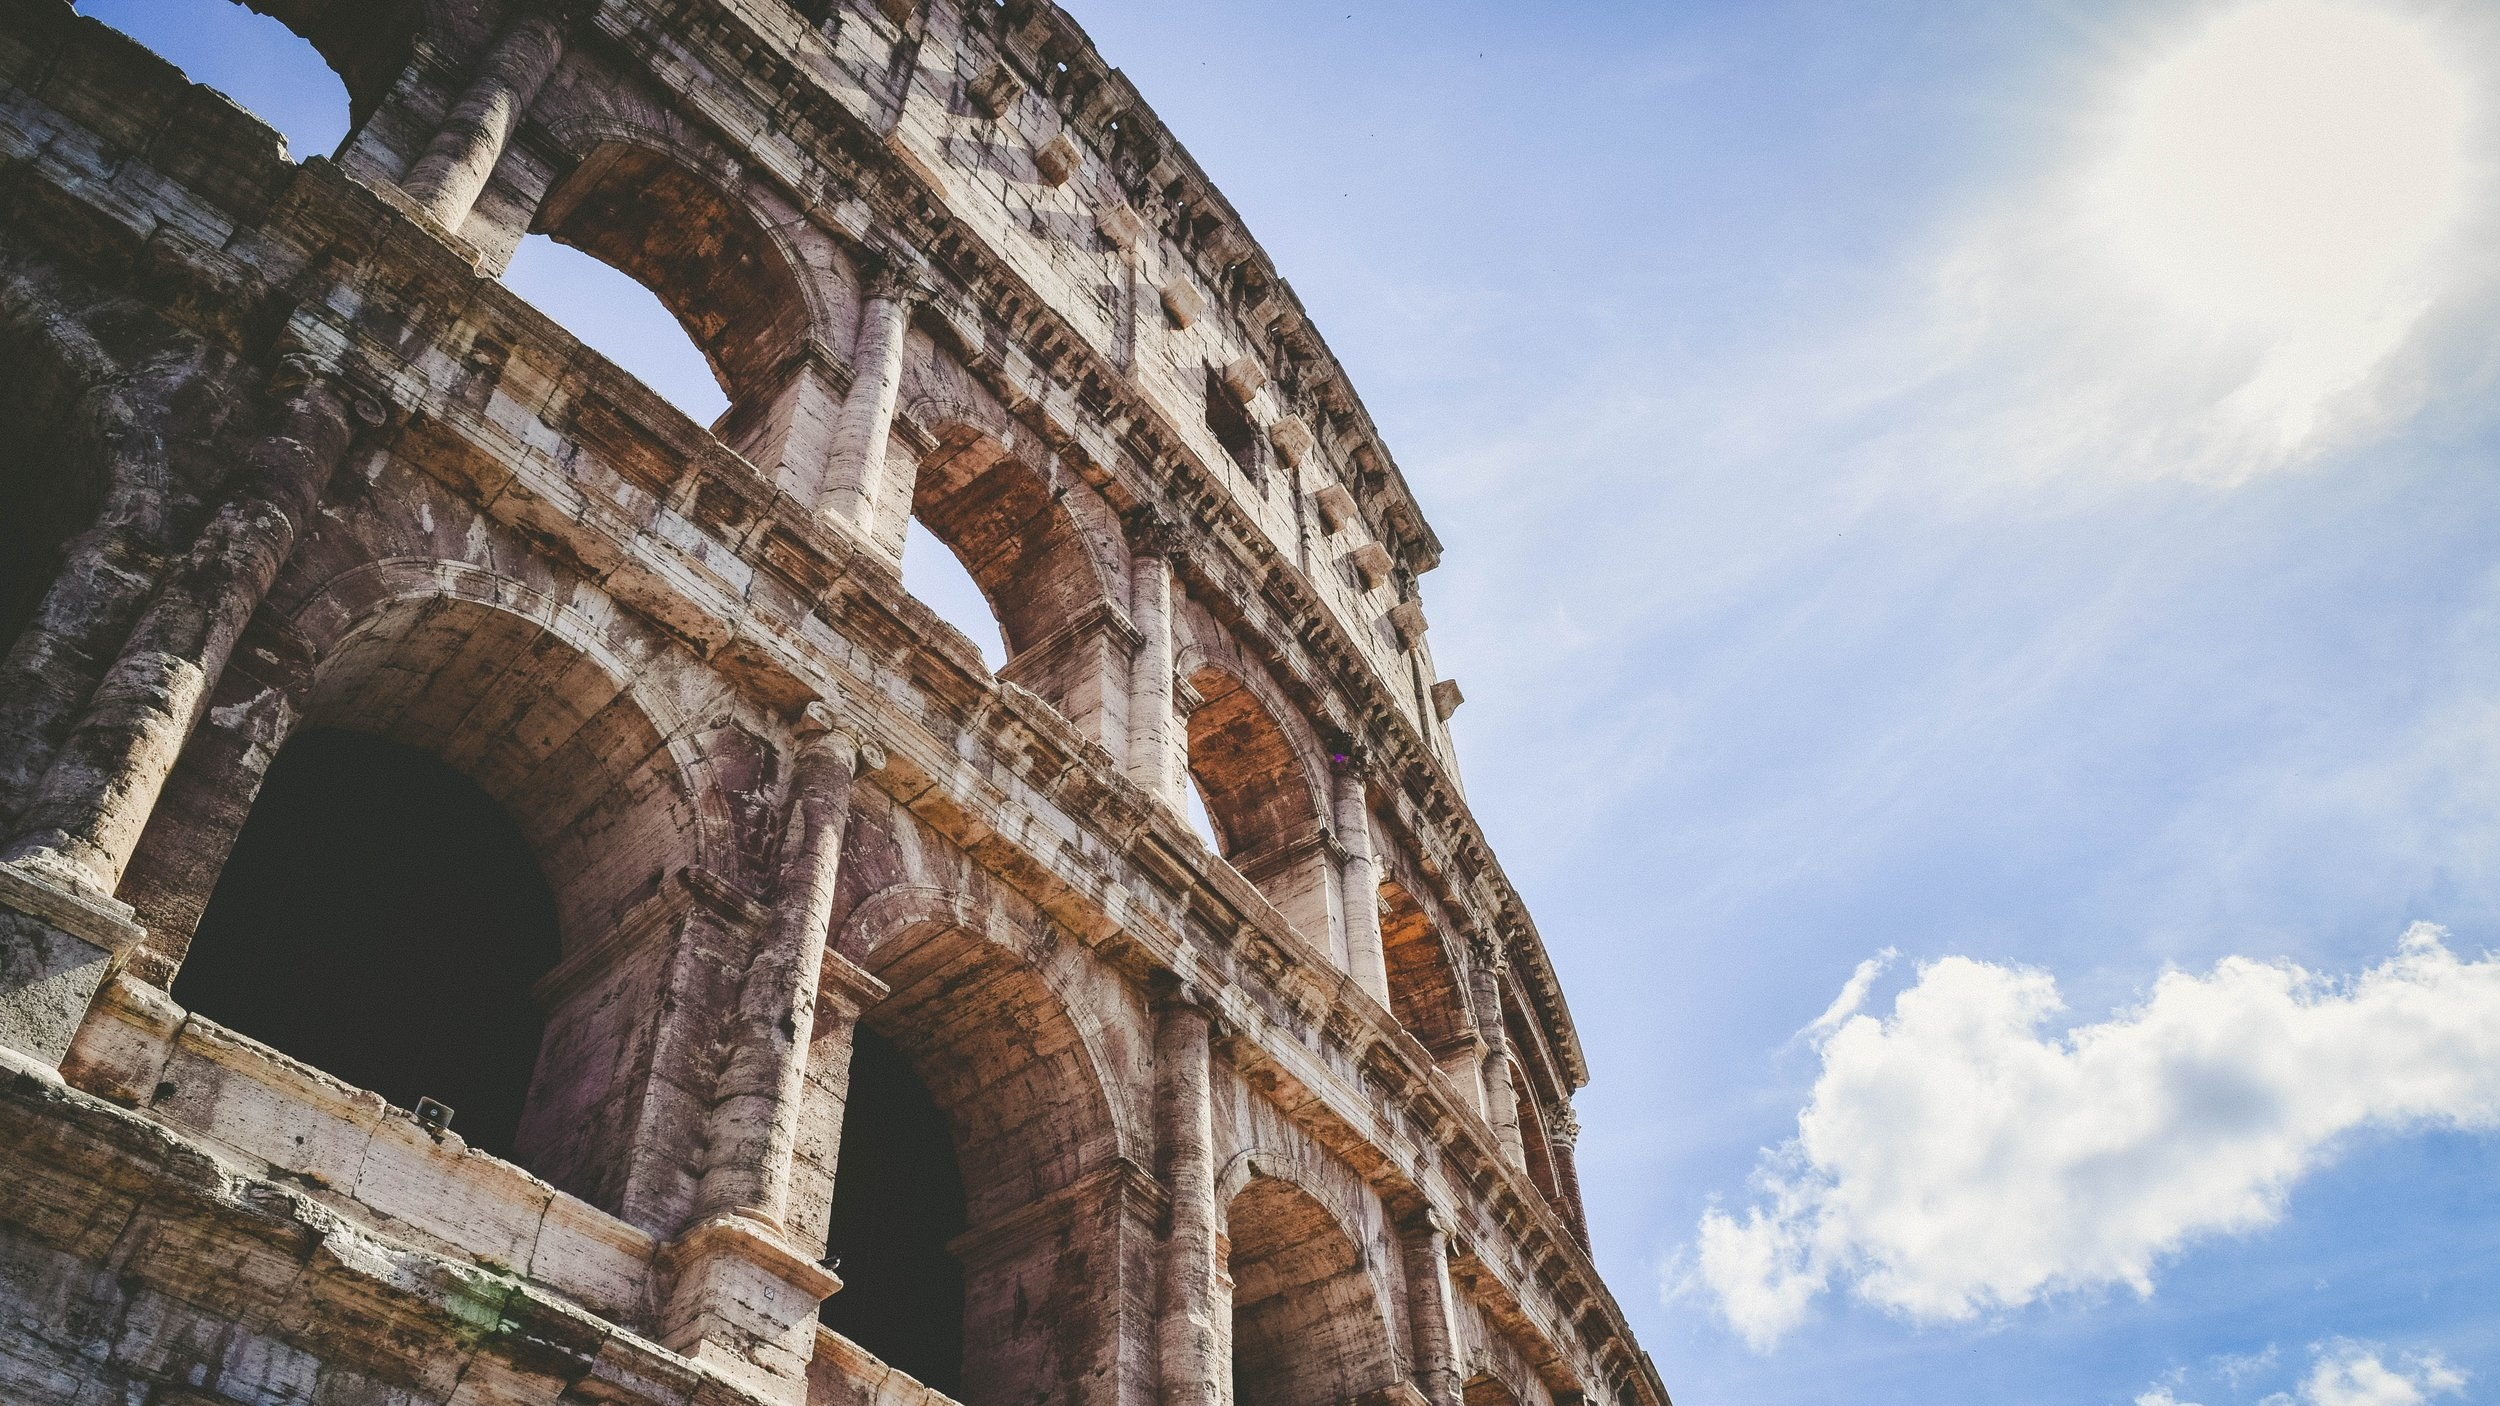 Tuesday of Holy Week - Explore the historical and cultural sites of Rome - the Coliseum, Roman Forum, and more!